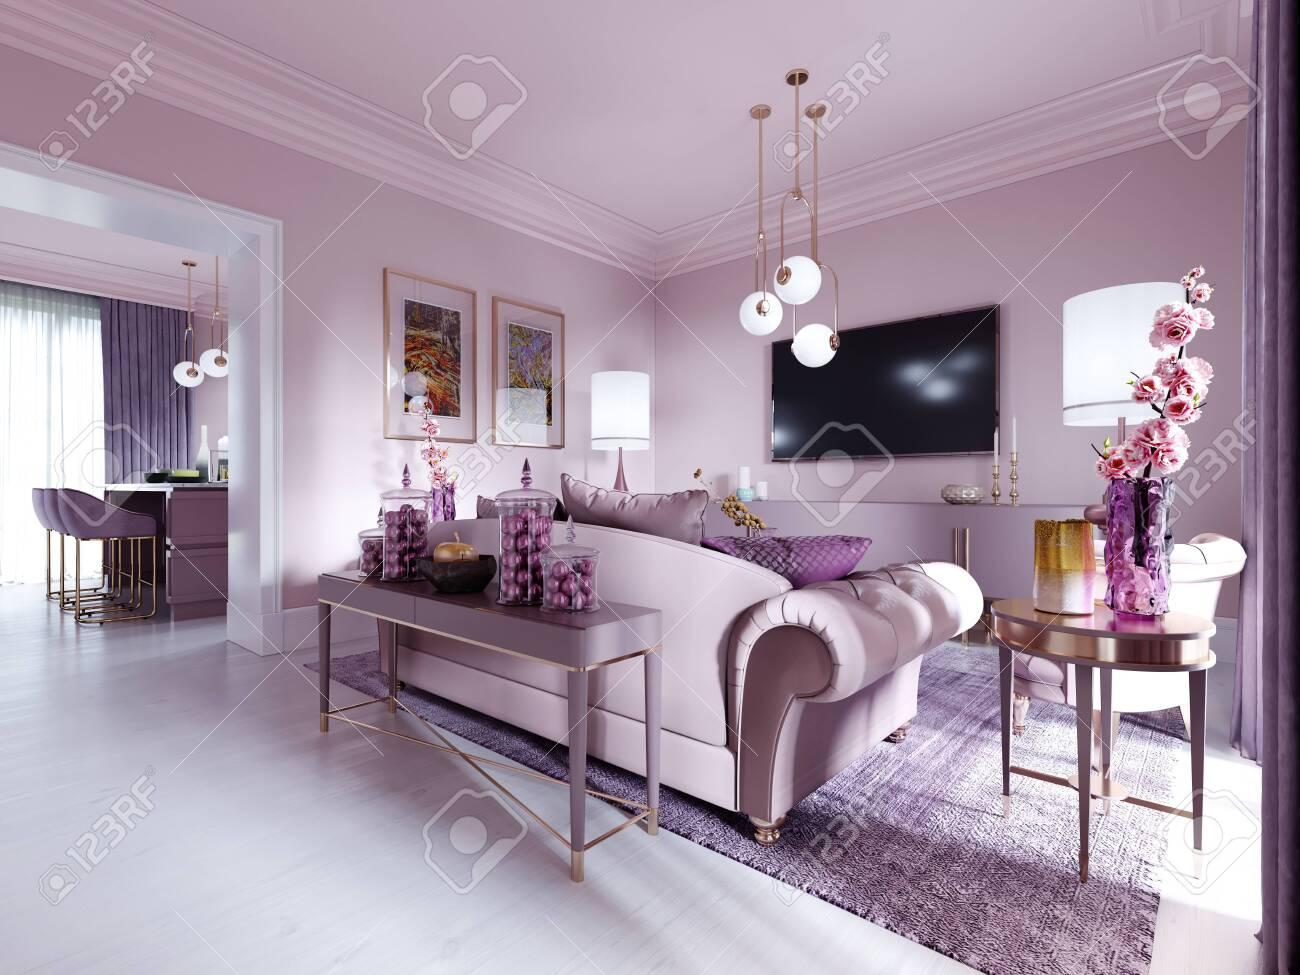 Modern Art Deco Living Room In Lilac Color With Fashionable Upholstered Stock Photo Picture And Royalty Free Image Image 150296869